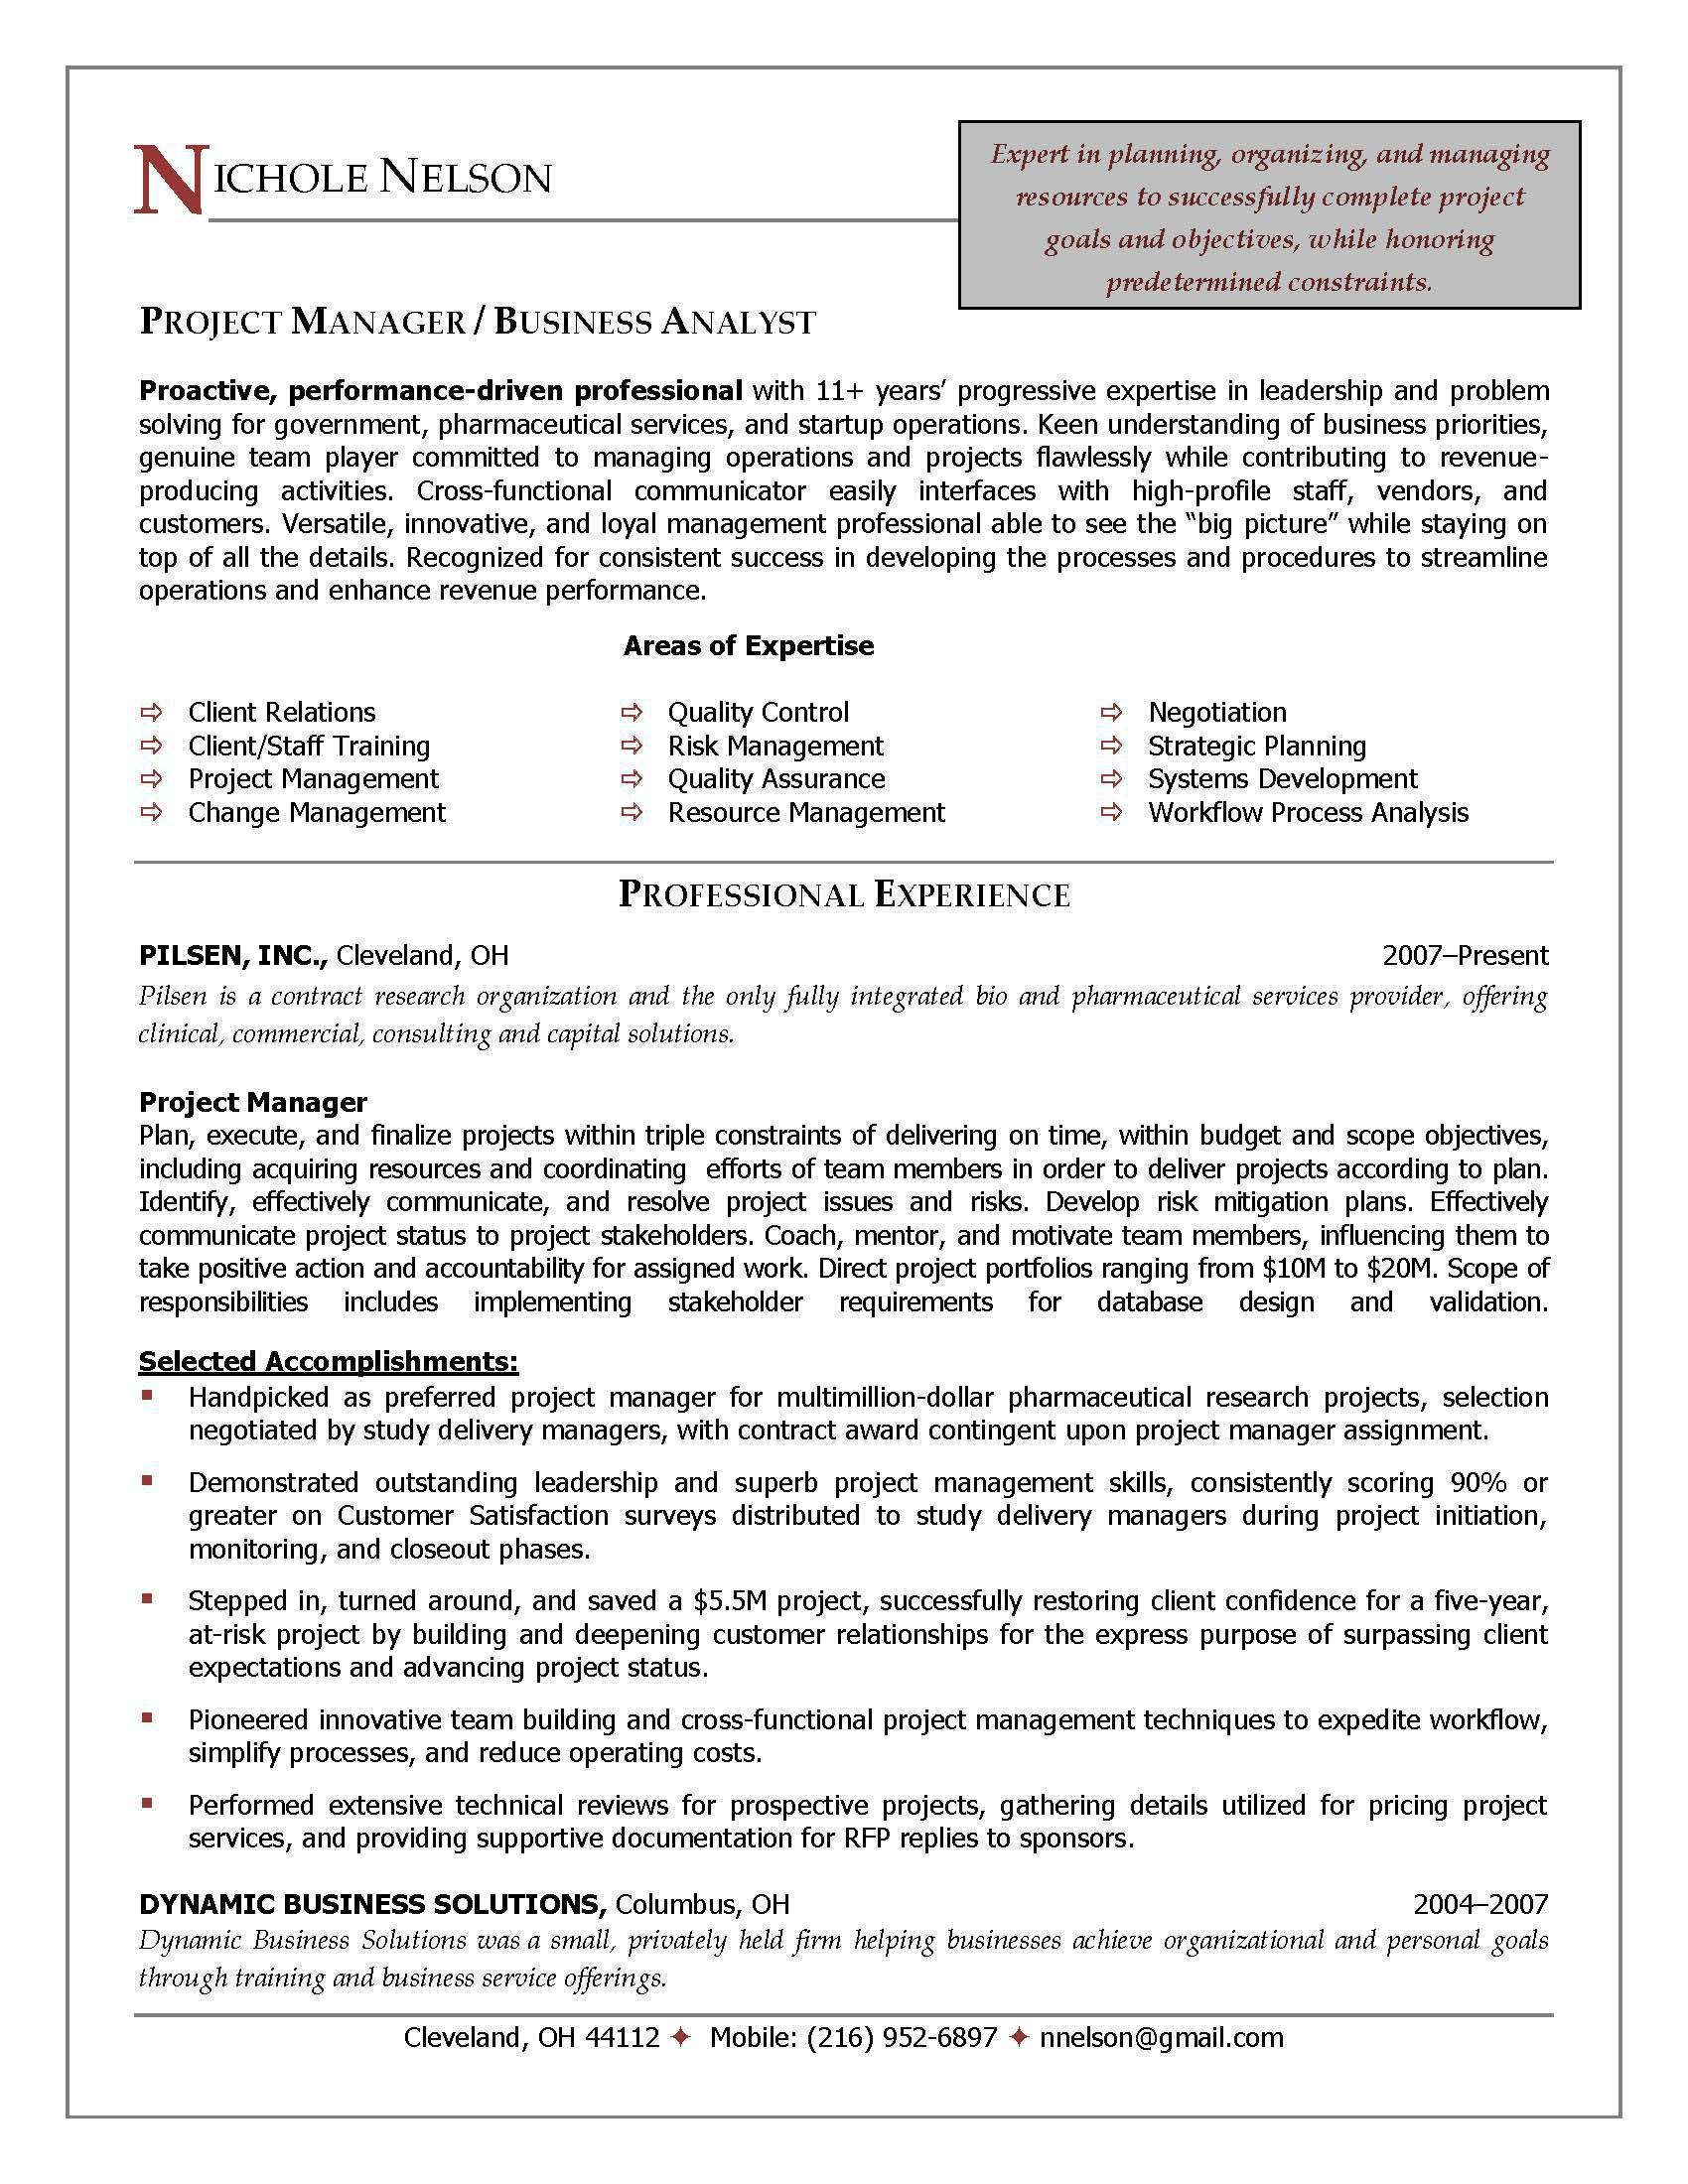 Project Resume Example Inspirationprintablelogisticsresumeexampleslogisticsresume .